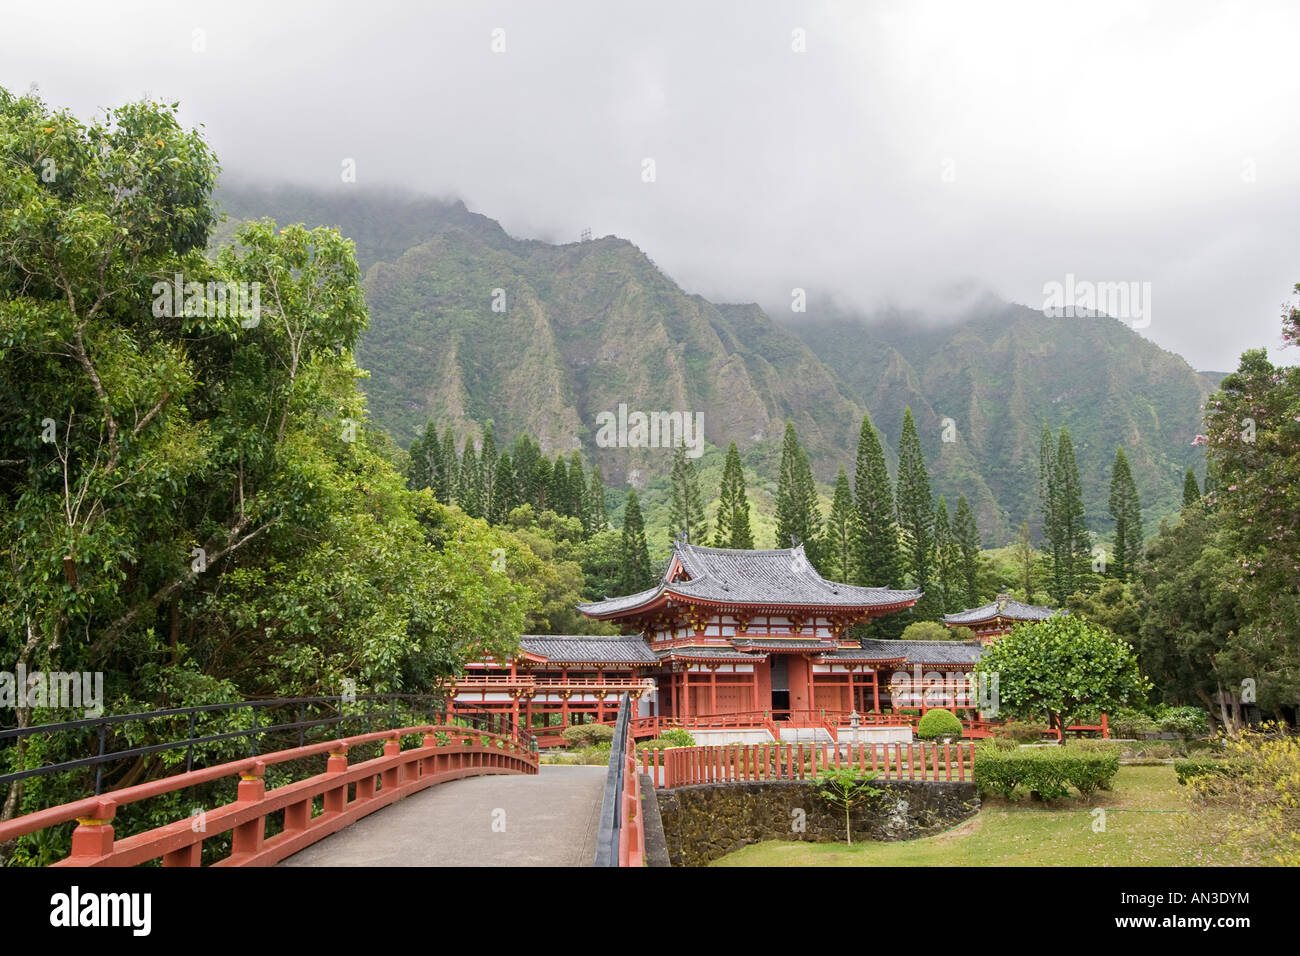 Byodo In Temple reproduction of 900 year old Japanese temple built in 1968 Valley of the Temples Oahu HI - Stock Image